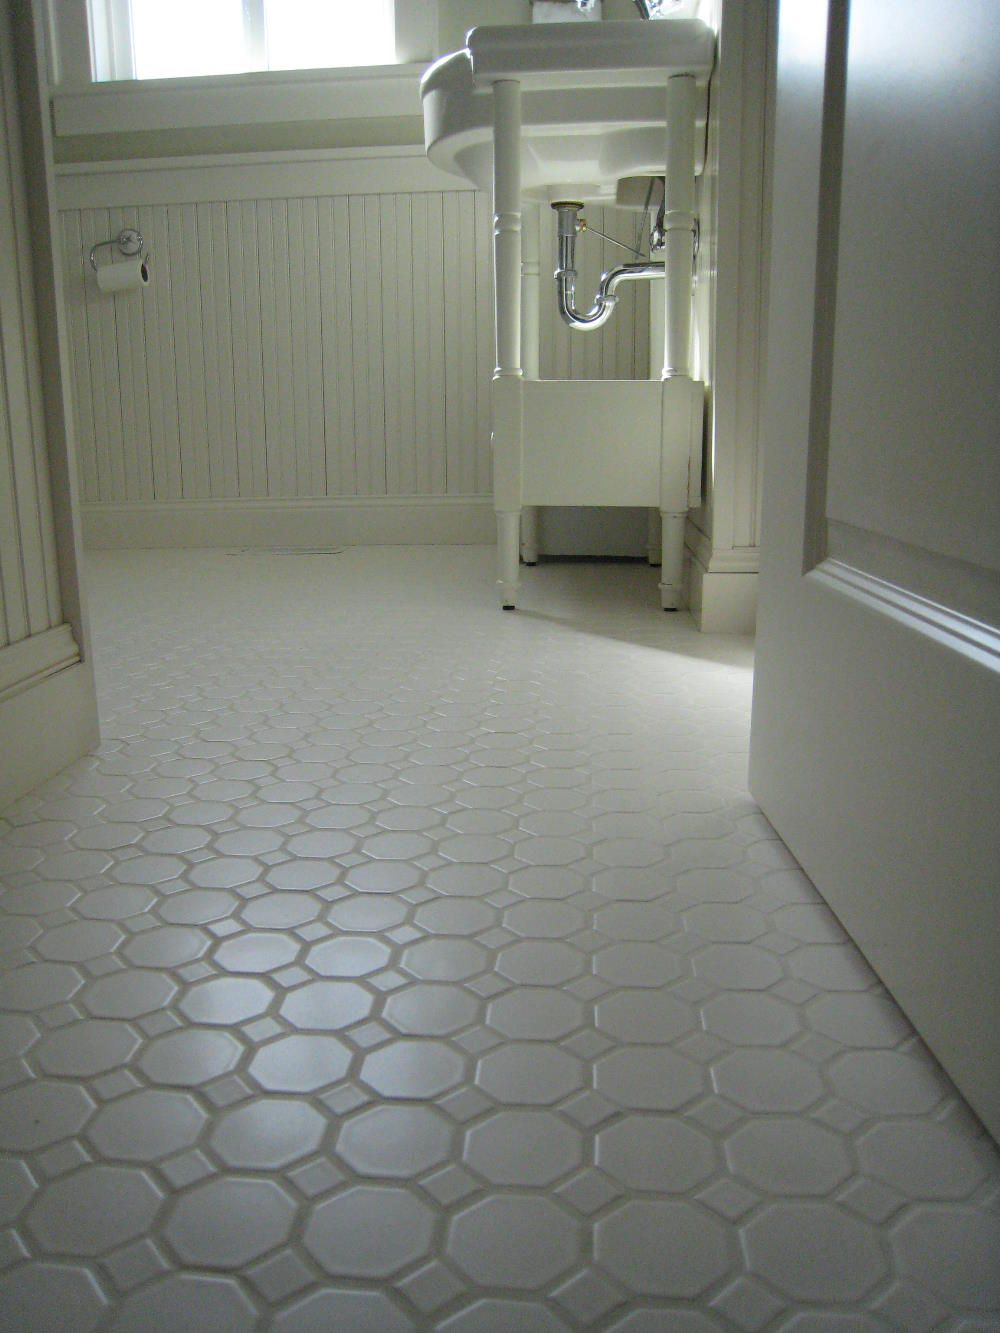 White porcelian hexagon floor tile shown installed the type of bathroom floor tiles and alternative flooring solutions bathroom floor tile installation of white hexagon porcelain tile white dailygadgetfo Choice Image